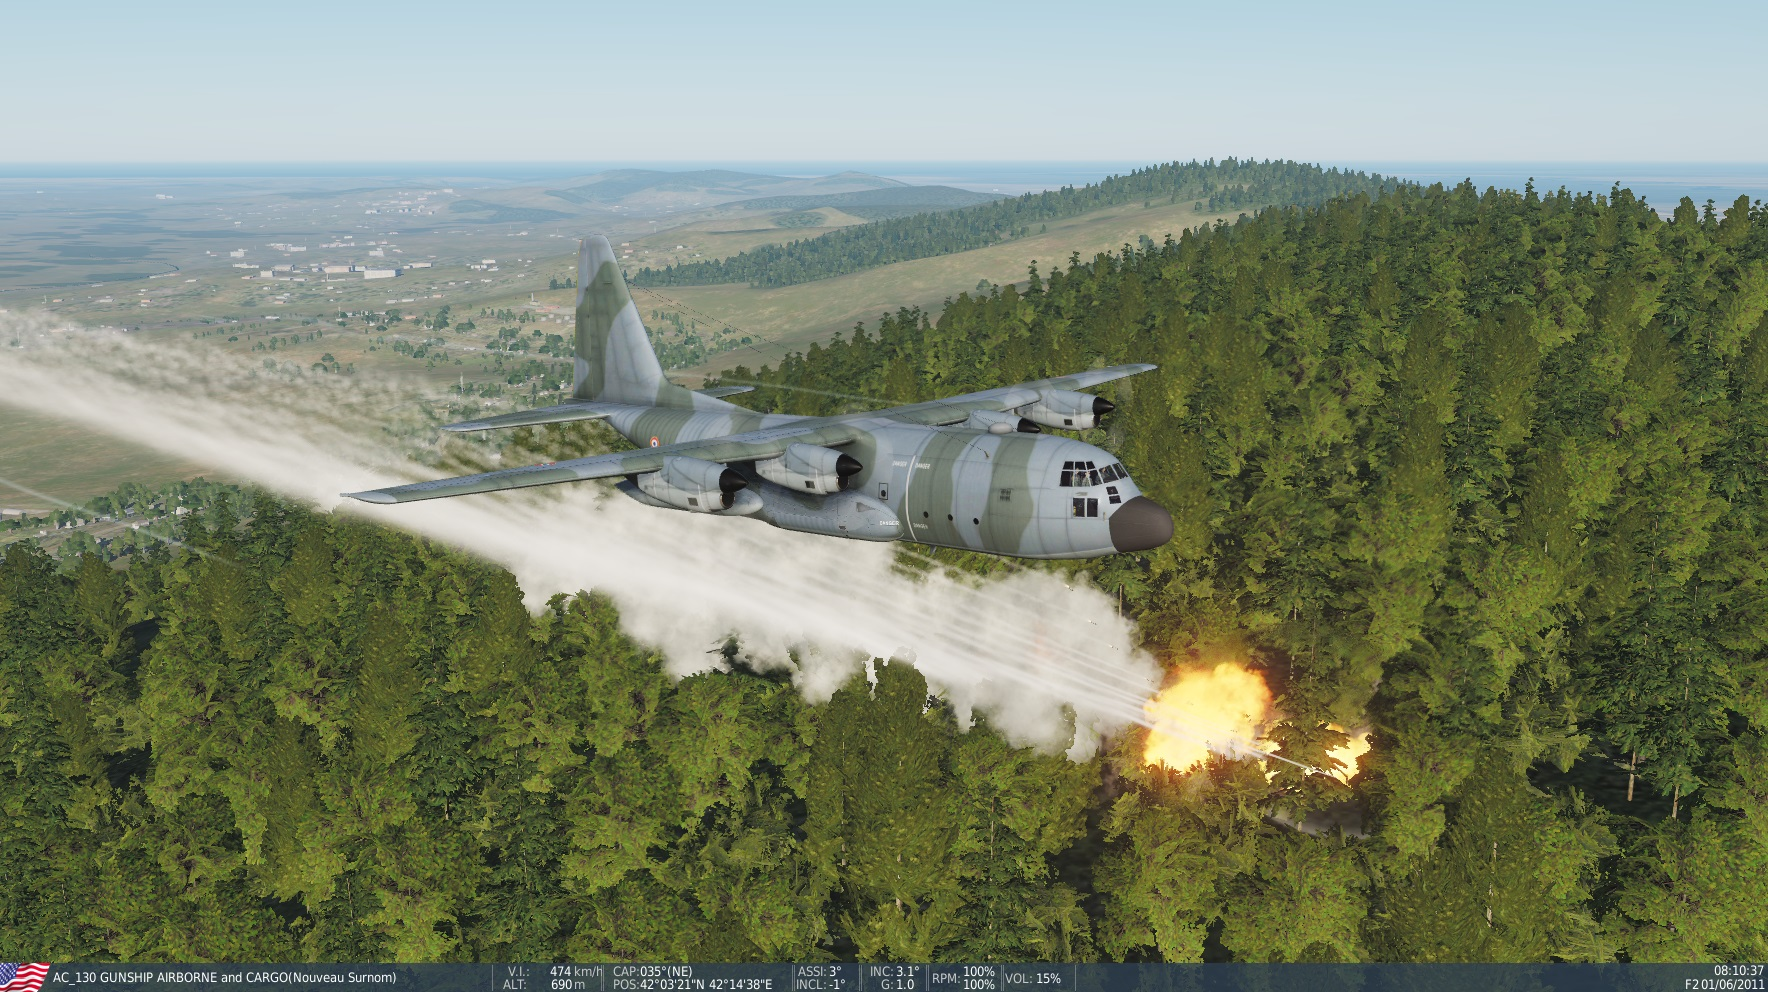 MOD AC-130 GUNSHIP PARASHUTISTS AND CARGO update for 2.5.5 by Eric and Patrick